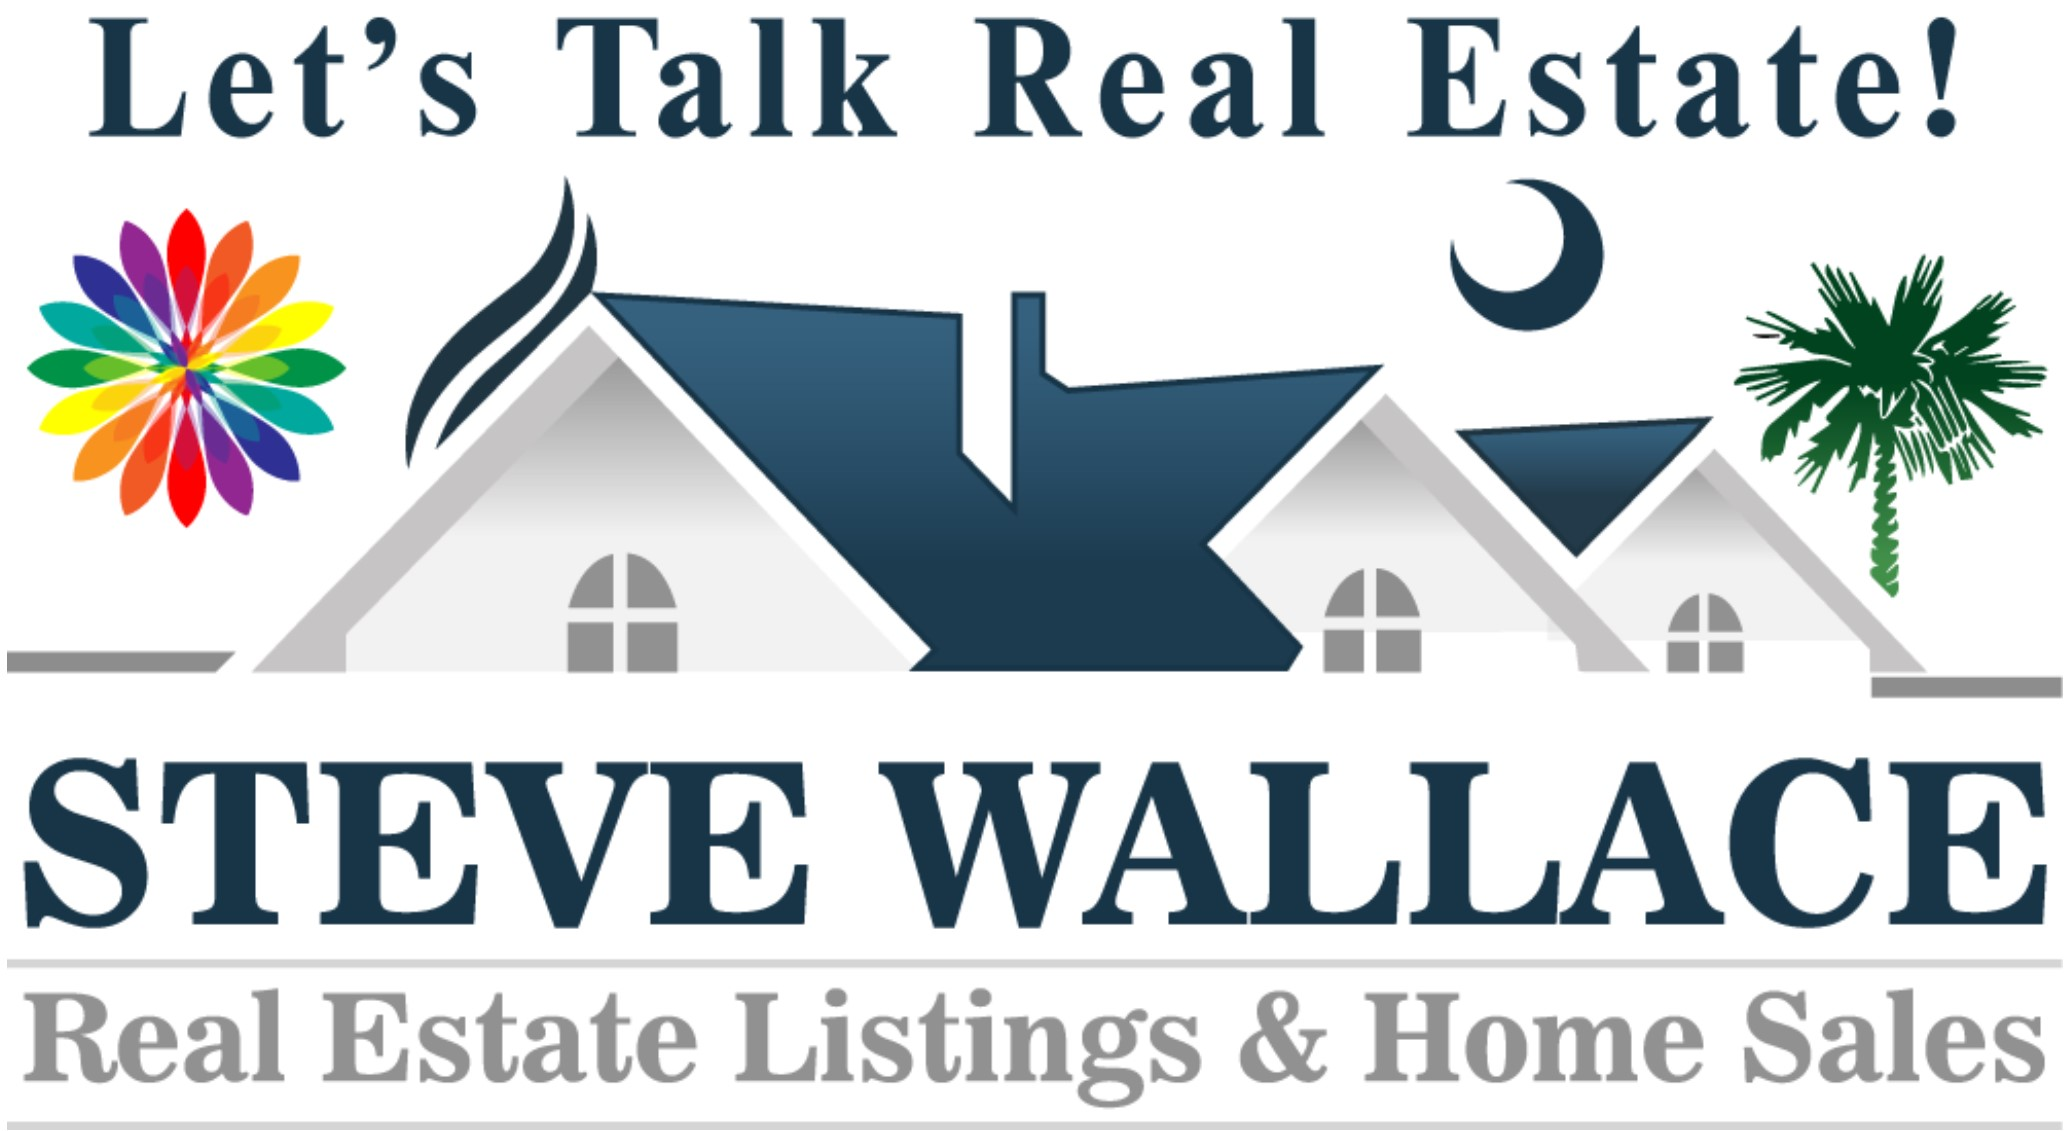 Steve Wallace, Real Estate in Bluffton, Realtors, Weichert, Licensed, Real Estate Agent